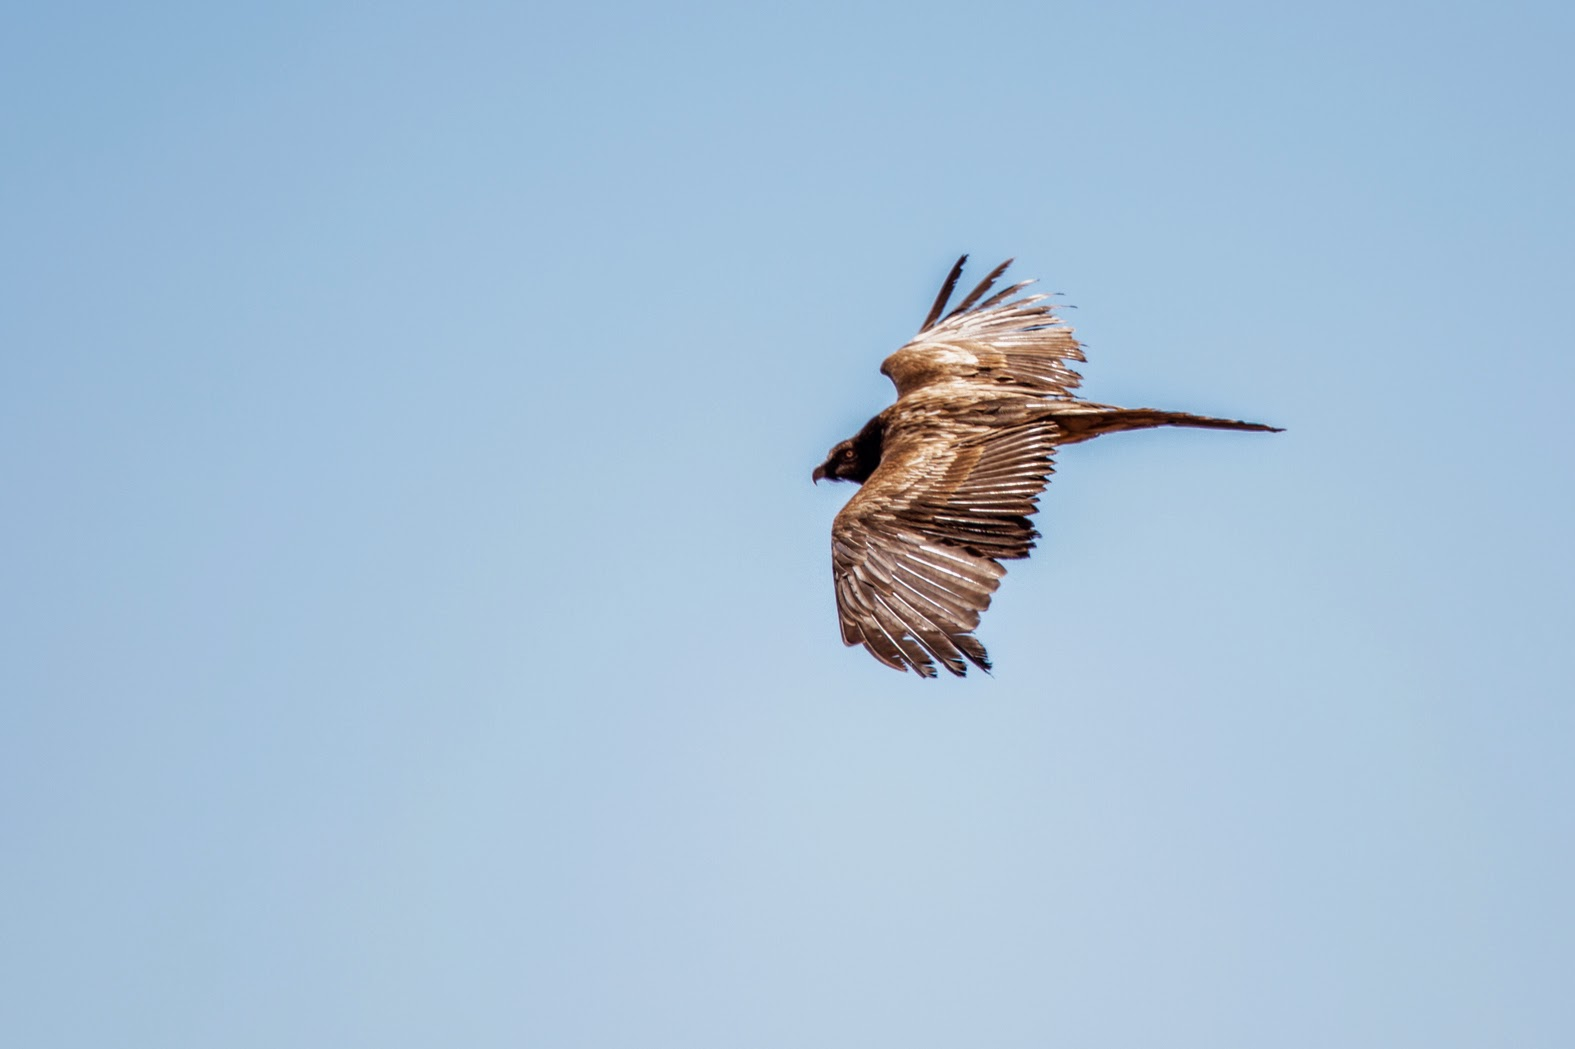 Bearded Vulture / Gypaète barbu (Gypaetus barbatus), Jbel Toubkal, High Atlas, Morocco, 07 March 2015 (Ali Irizi).